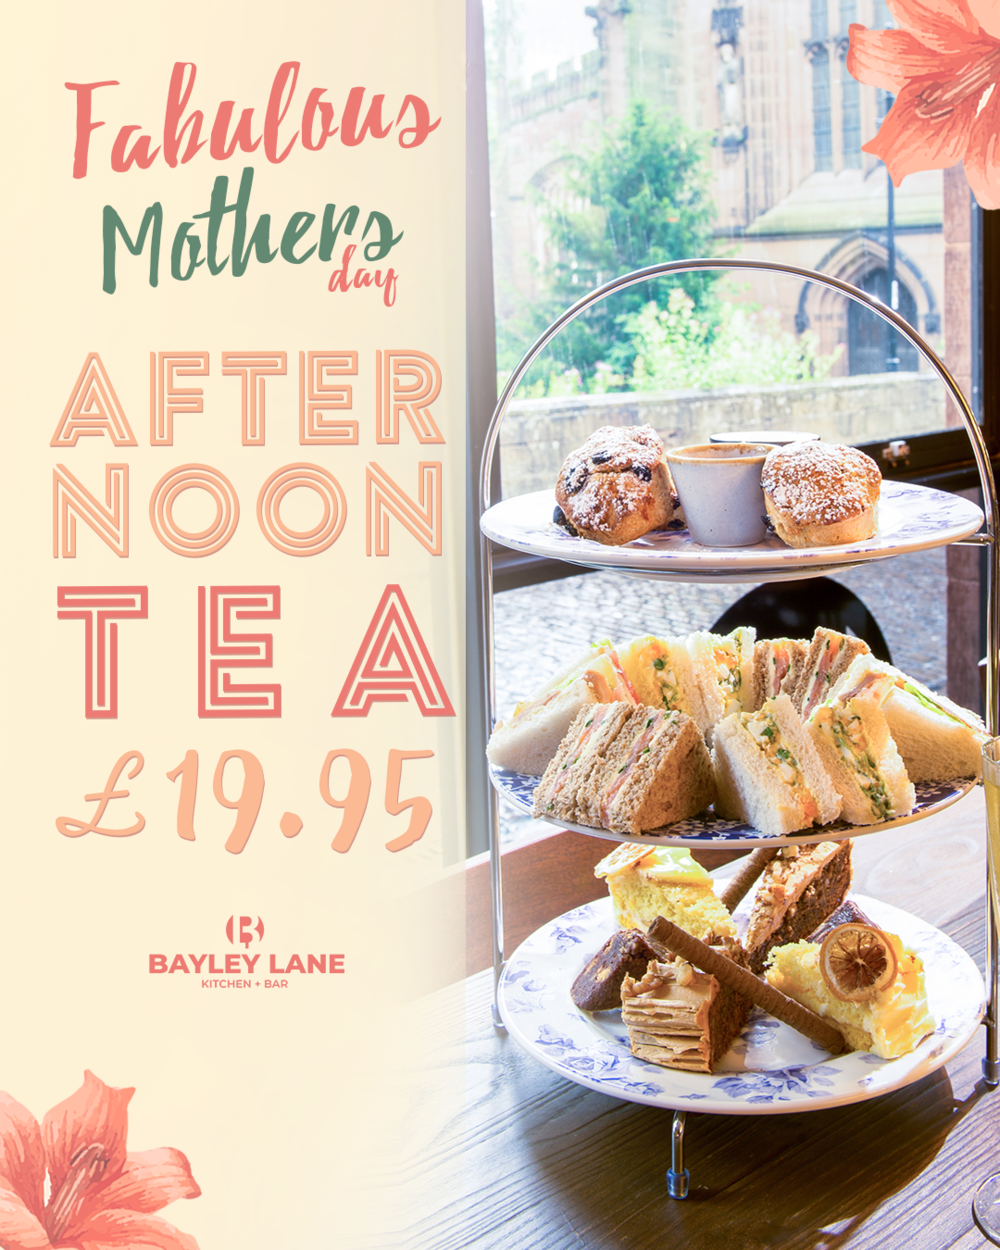 Add a touch of class - Spruce up Mother's day with an extra special afternoon tea. To Book the afternoon tea, make sure you reference 'AFTERNOON TEA' in your booking below.We only have a few spaces for this so book in before they're all gone.£19.95 per 2 people